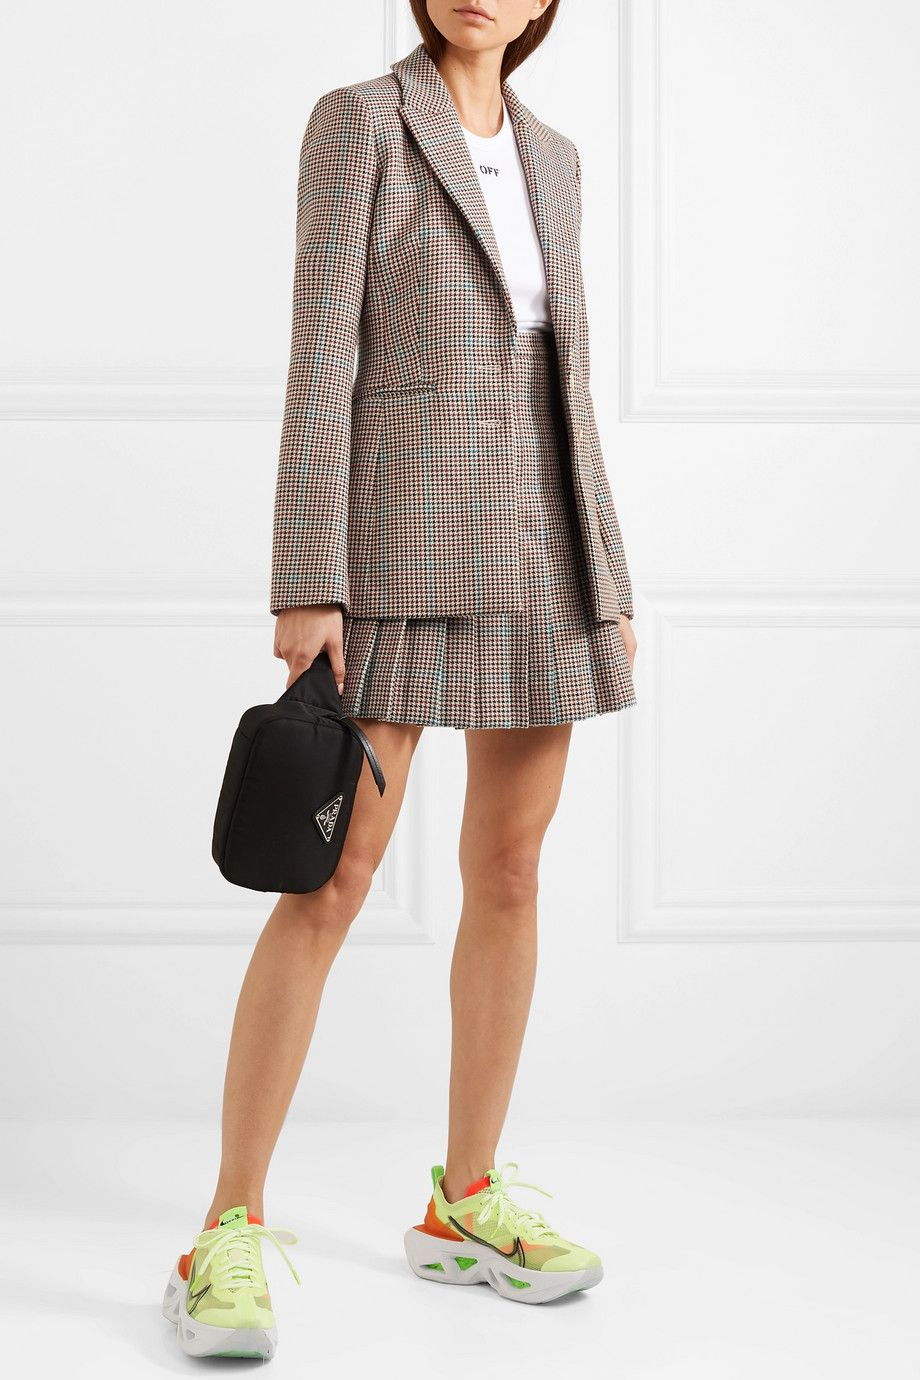 off-white-checked-wool-blazer-matching-pleated-skirt-outfit